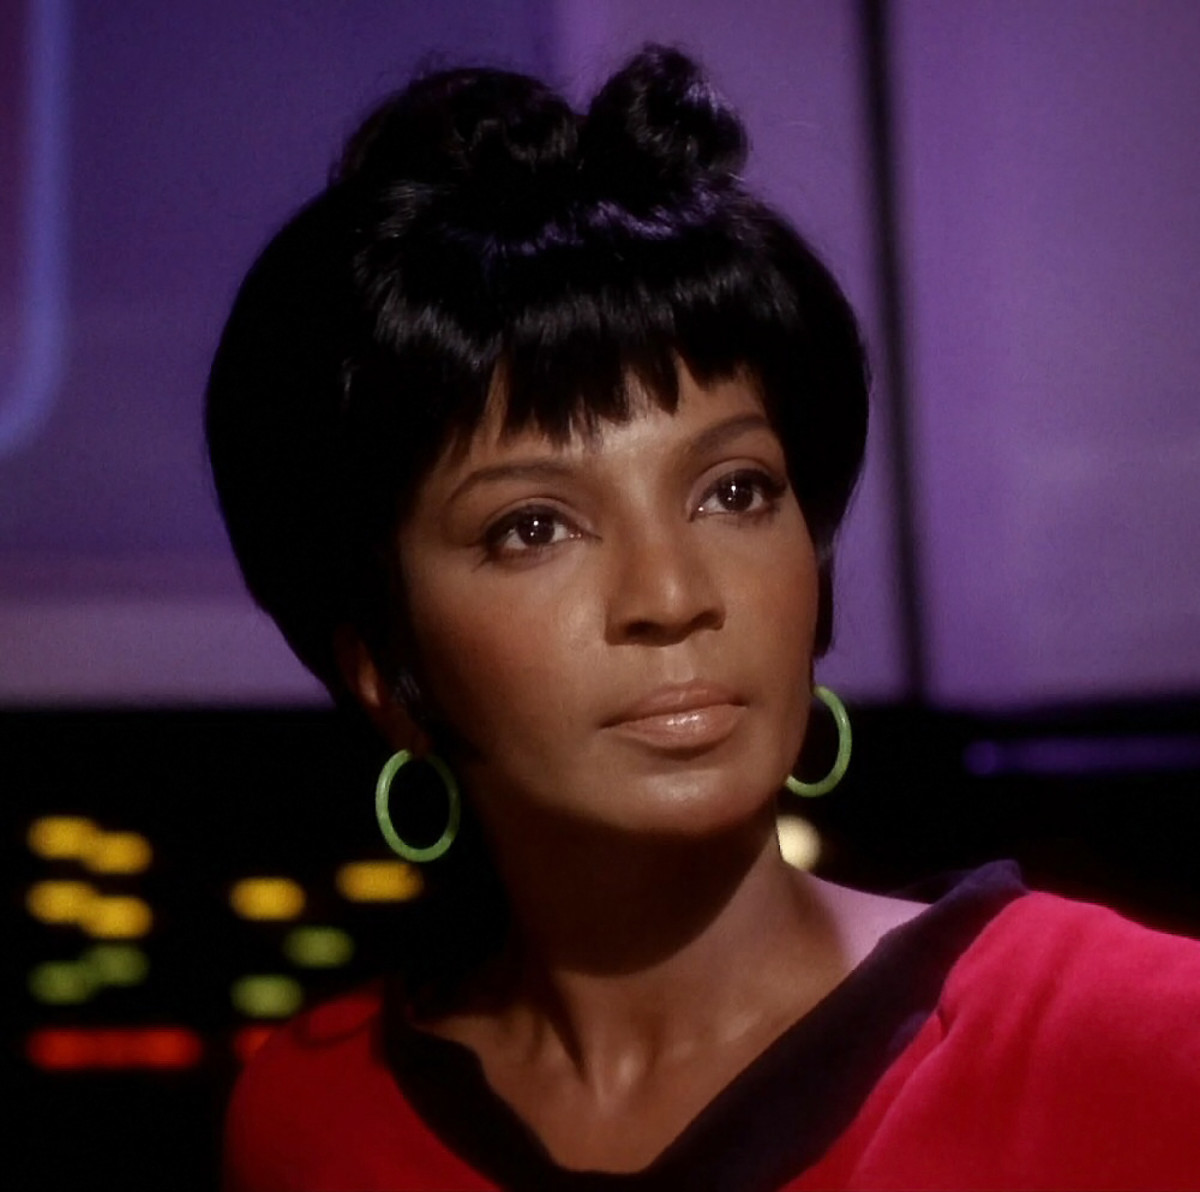 MAC Star Trek collection: Uhura